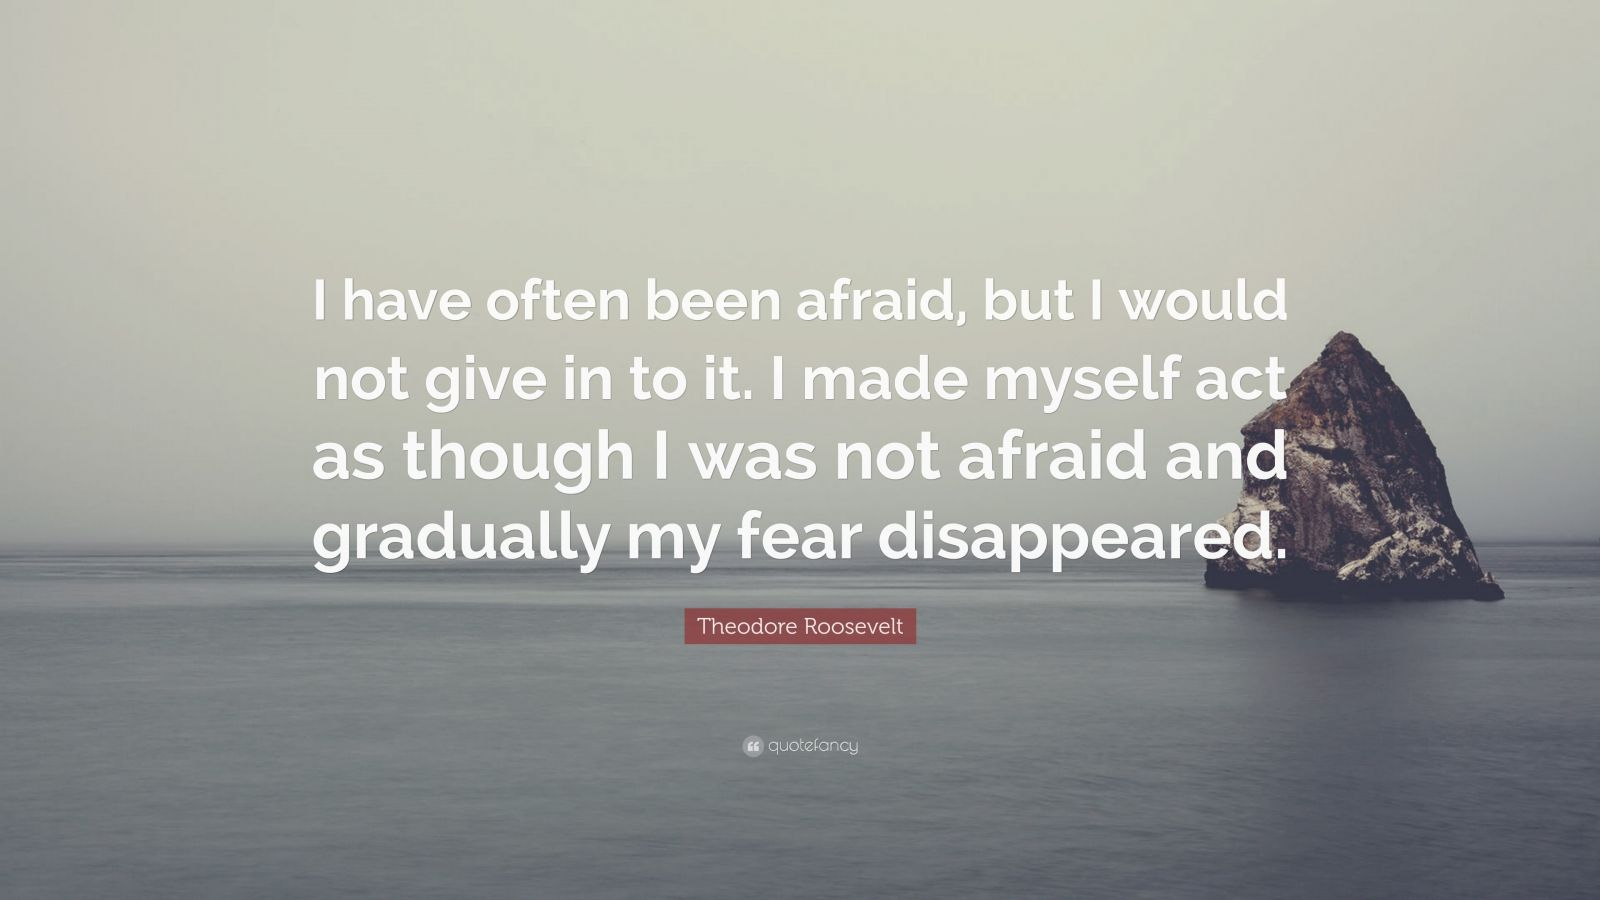 """Theodore Roosevelt Quote: """"I have often been afraid, but I would not give in to it. I made myself act as though I was not afraid and gradually my fear disappeared."""""""